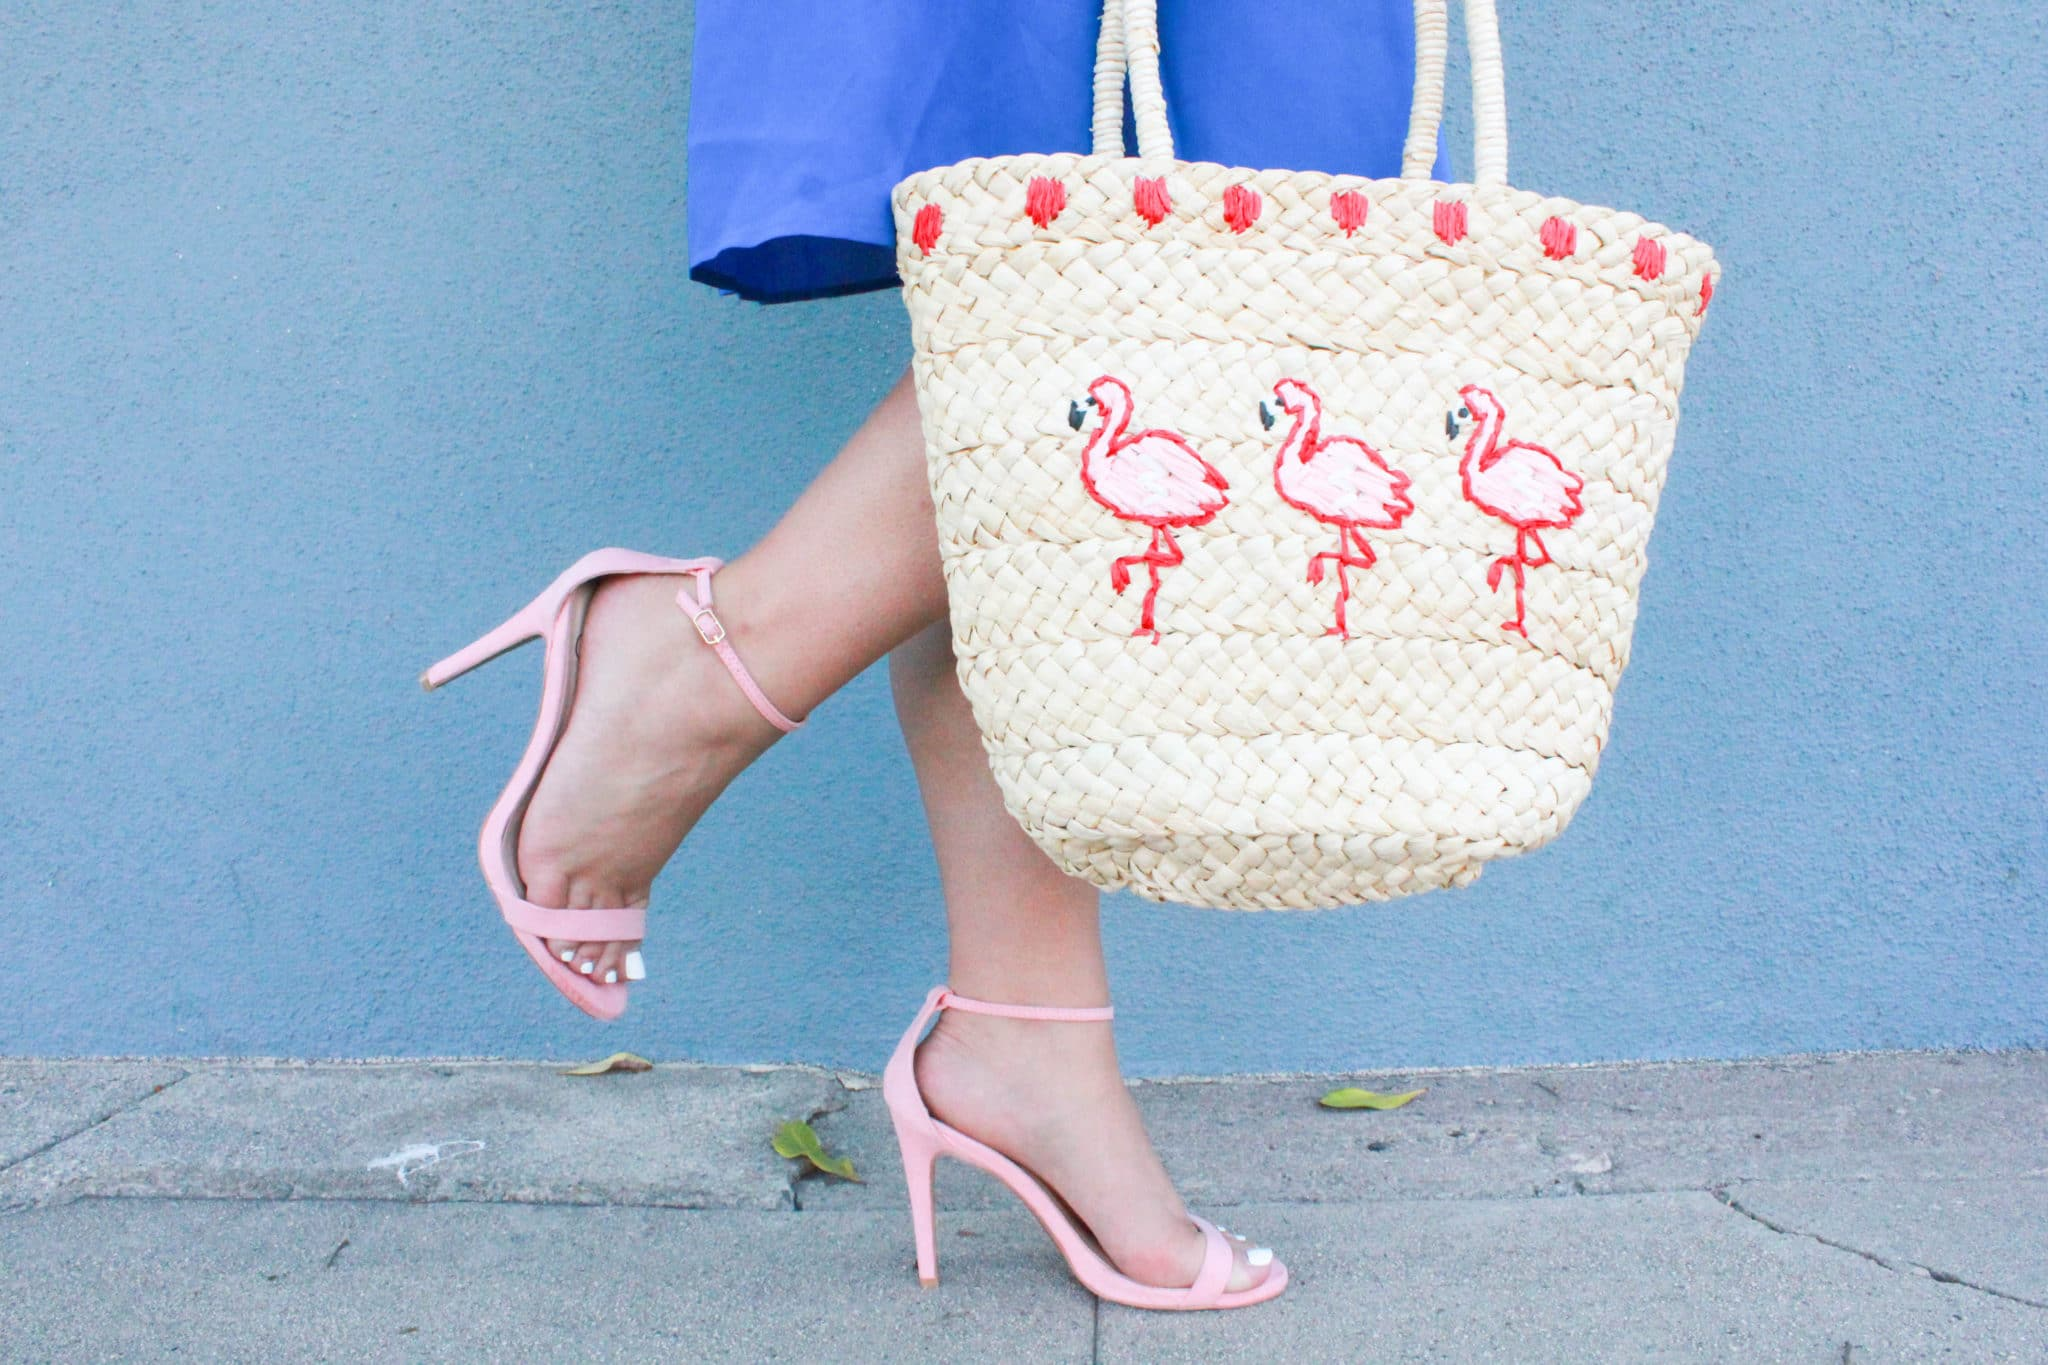 missyonmadison, missyonmadison blog, missyonmadison instagram, la blogger, fashion blog, fashion blogger, style blog, style blogger, pink ankle strap heels, pink heels, la blogger, bloglovin, fashion inspo, summer fashion, summer style, blue halter dress, cobalt blue halter dress, flamingo straw tote, flamingo purse, extensions, hair extensions,